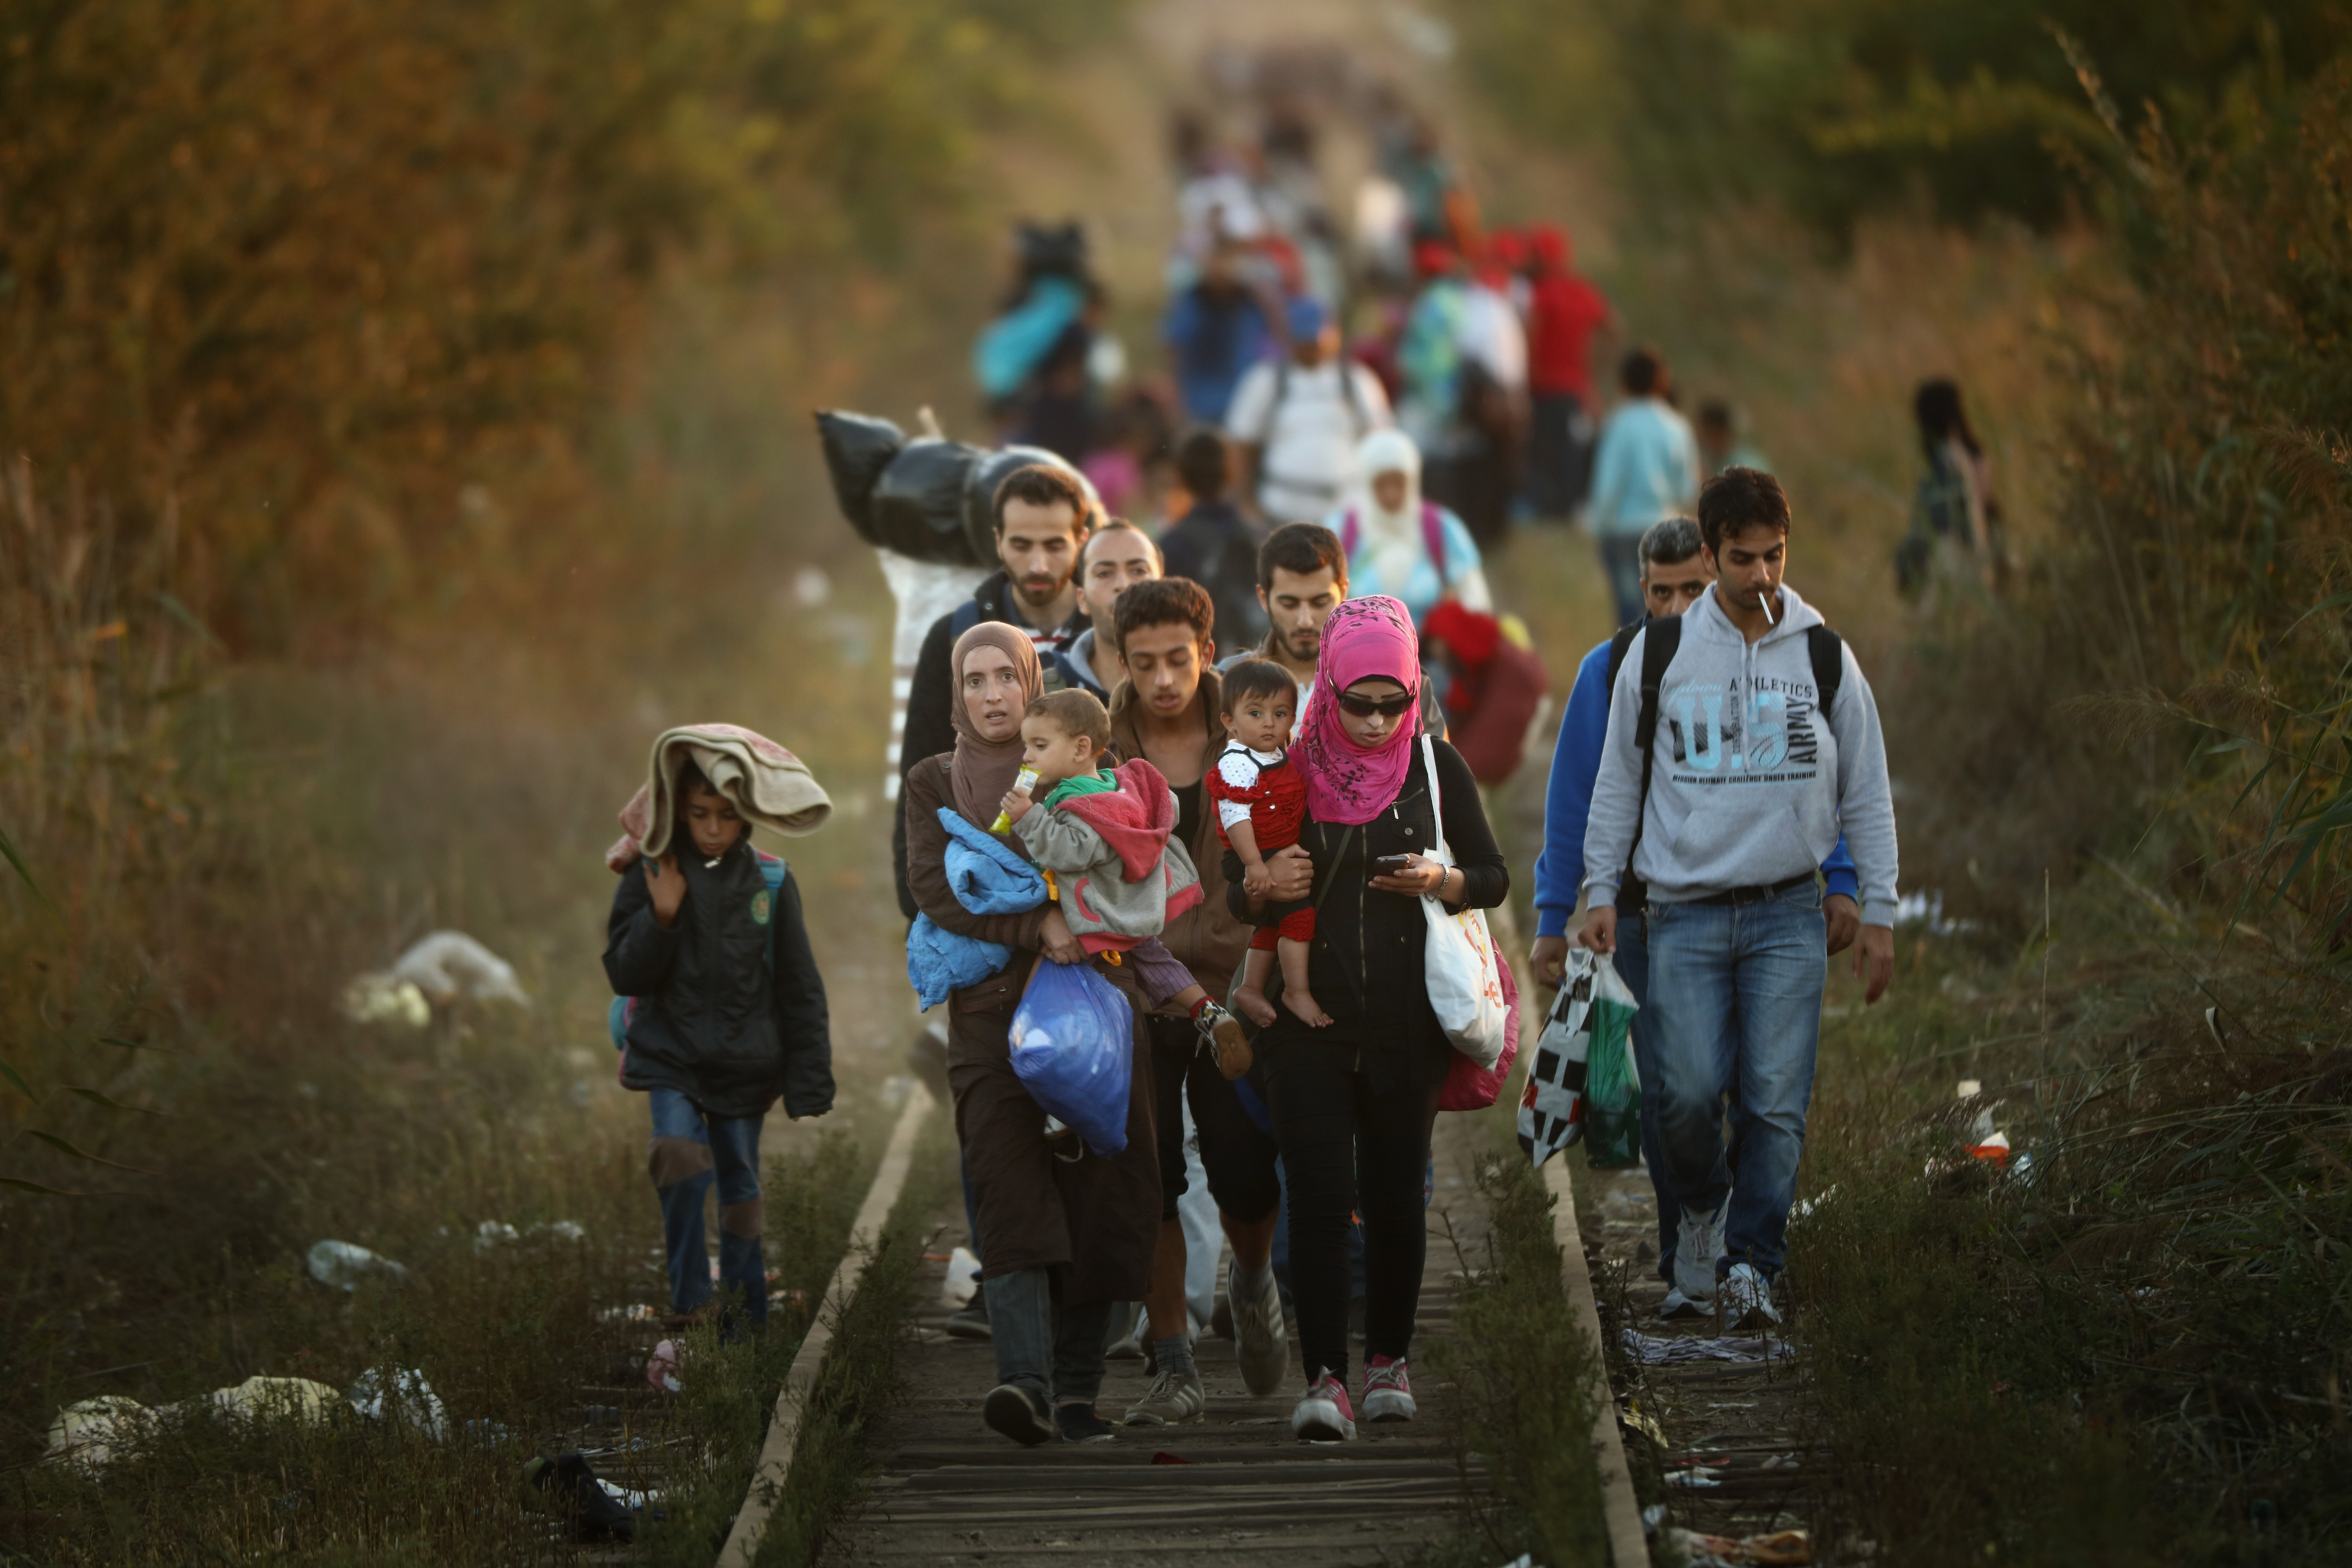 Migrants make their way through Serbia, near the town of Subotica, towards a break in the steel and razor fence erected on the  border by the Hungarian government on Sept. 9, 2015 in Subotica, Serbia.